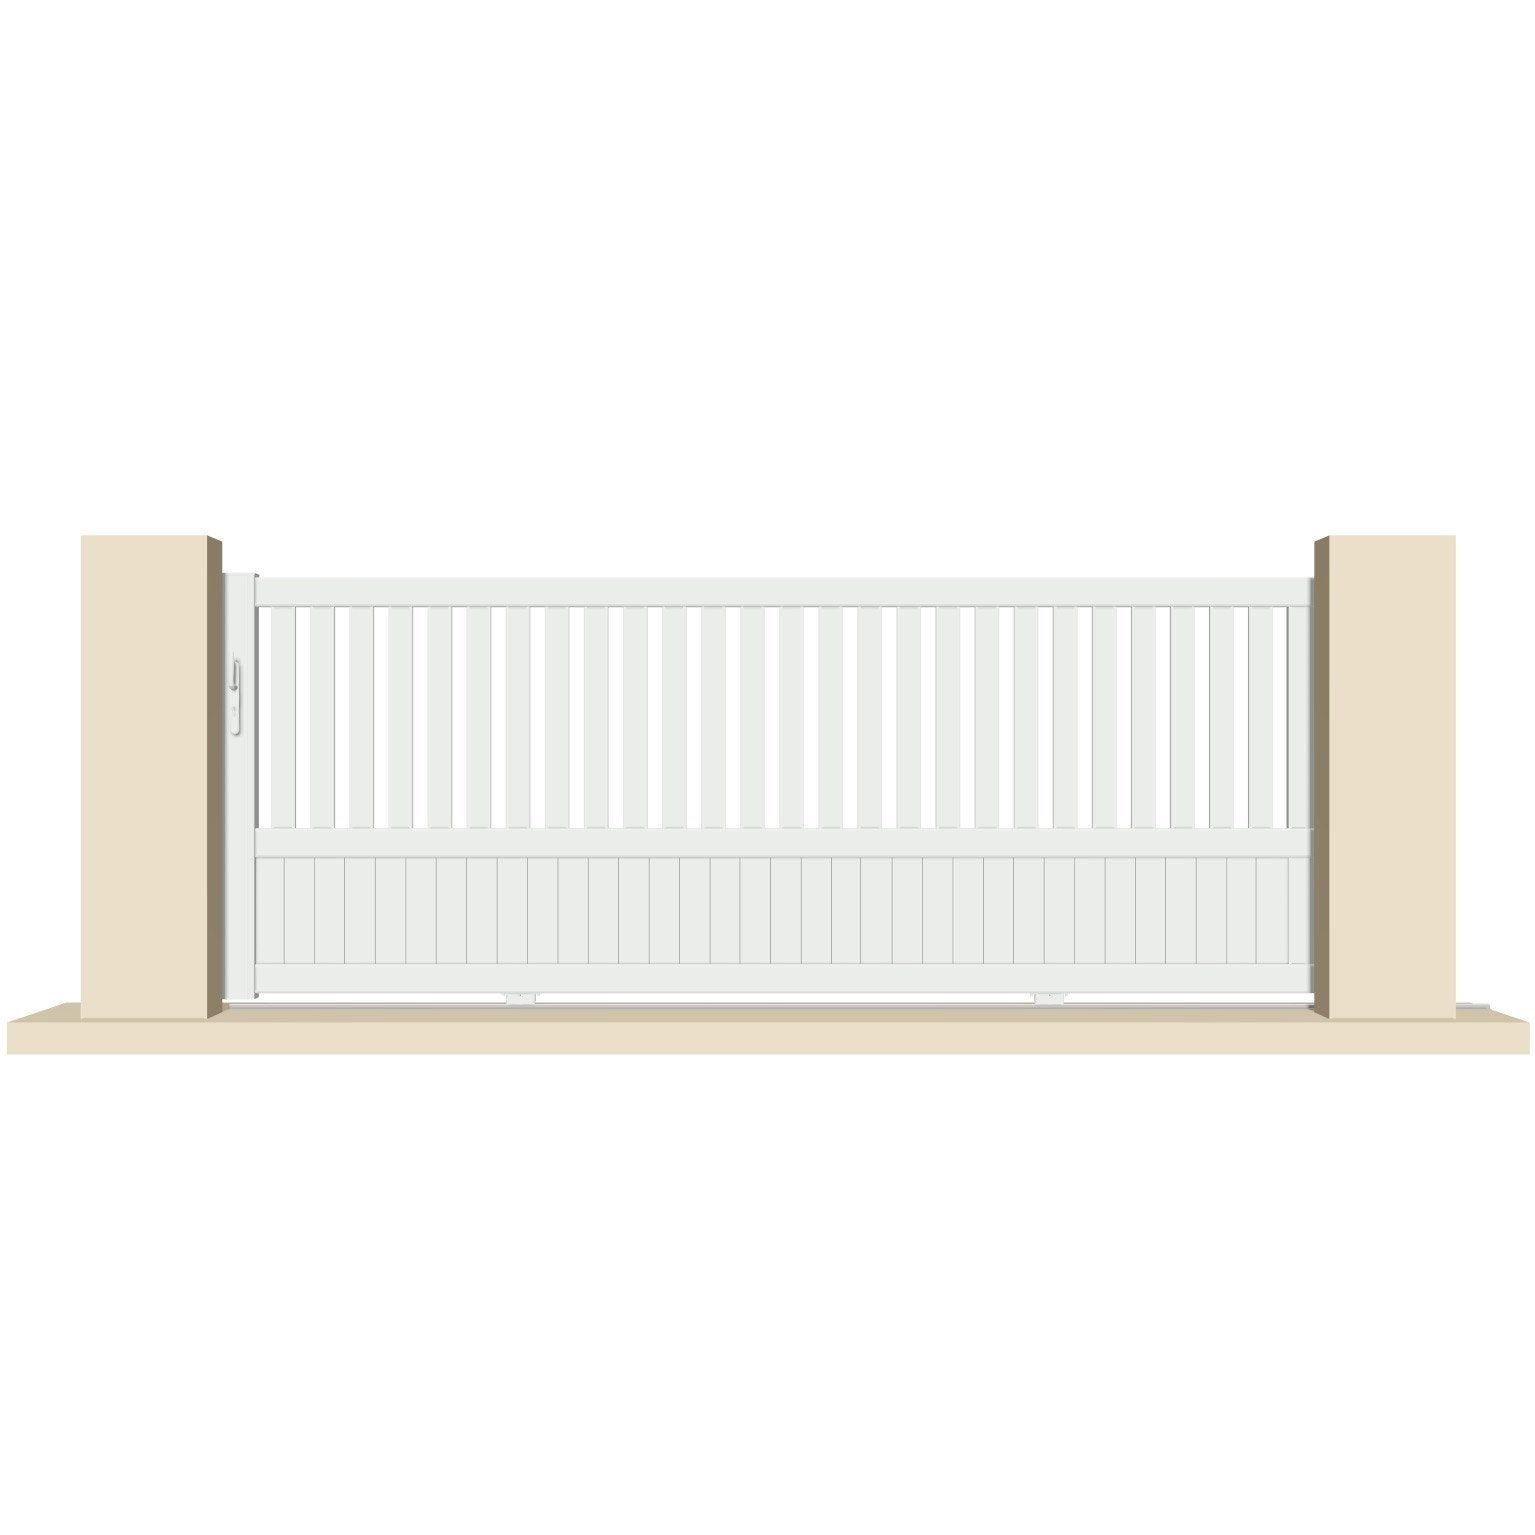 Portail Coulissant Pvc Launay Blanc Excellence L 358x H 140 Cm Portail Coulissant Portail Pvc